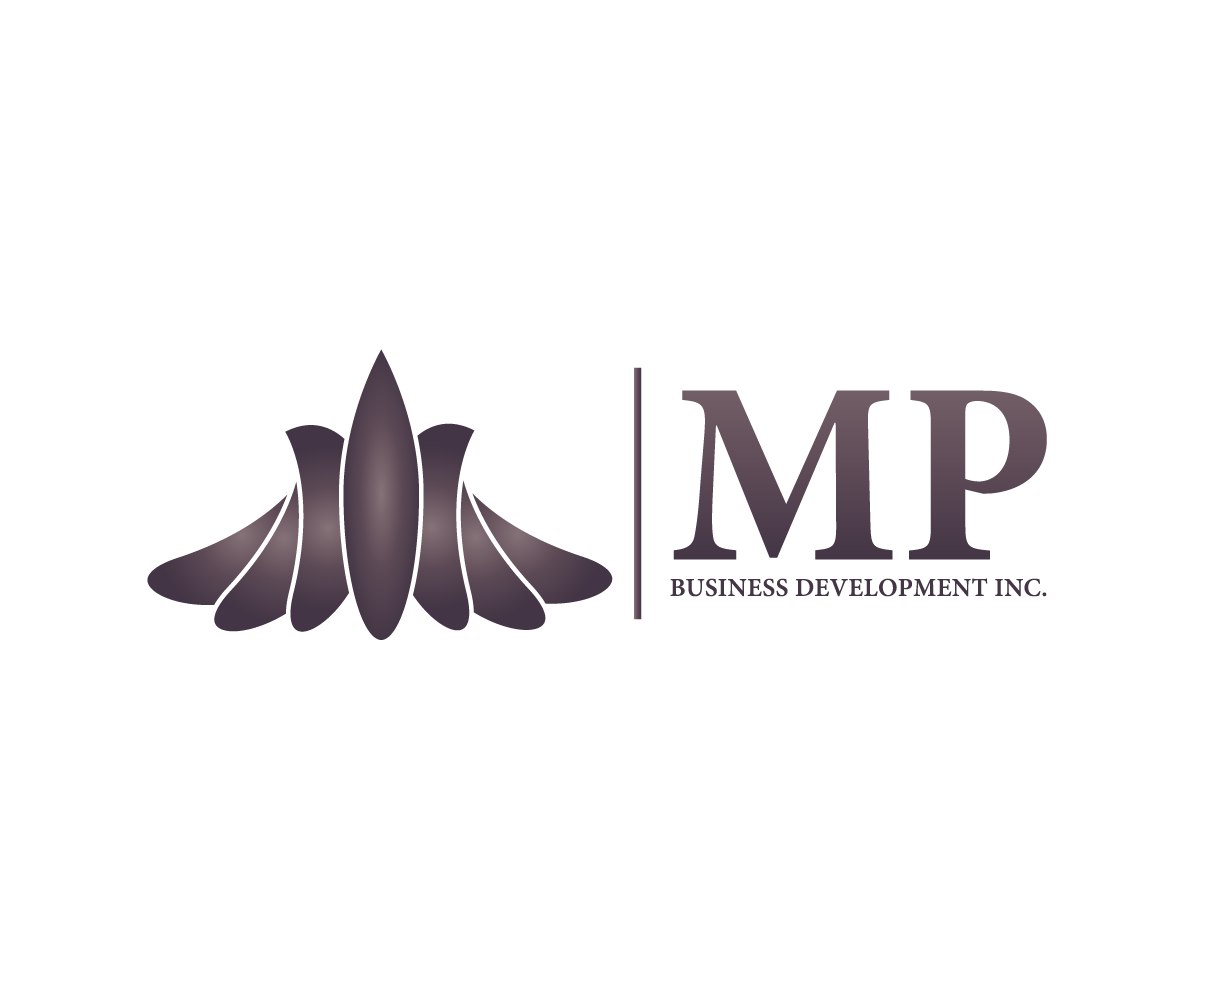 Logo Design by Private User - Entry No. 27 in the Logo Design Contest MP Business Development Inc. Logo Design.